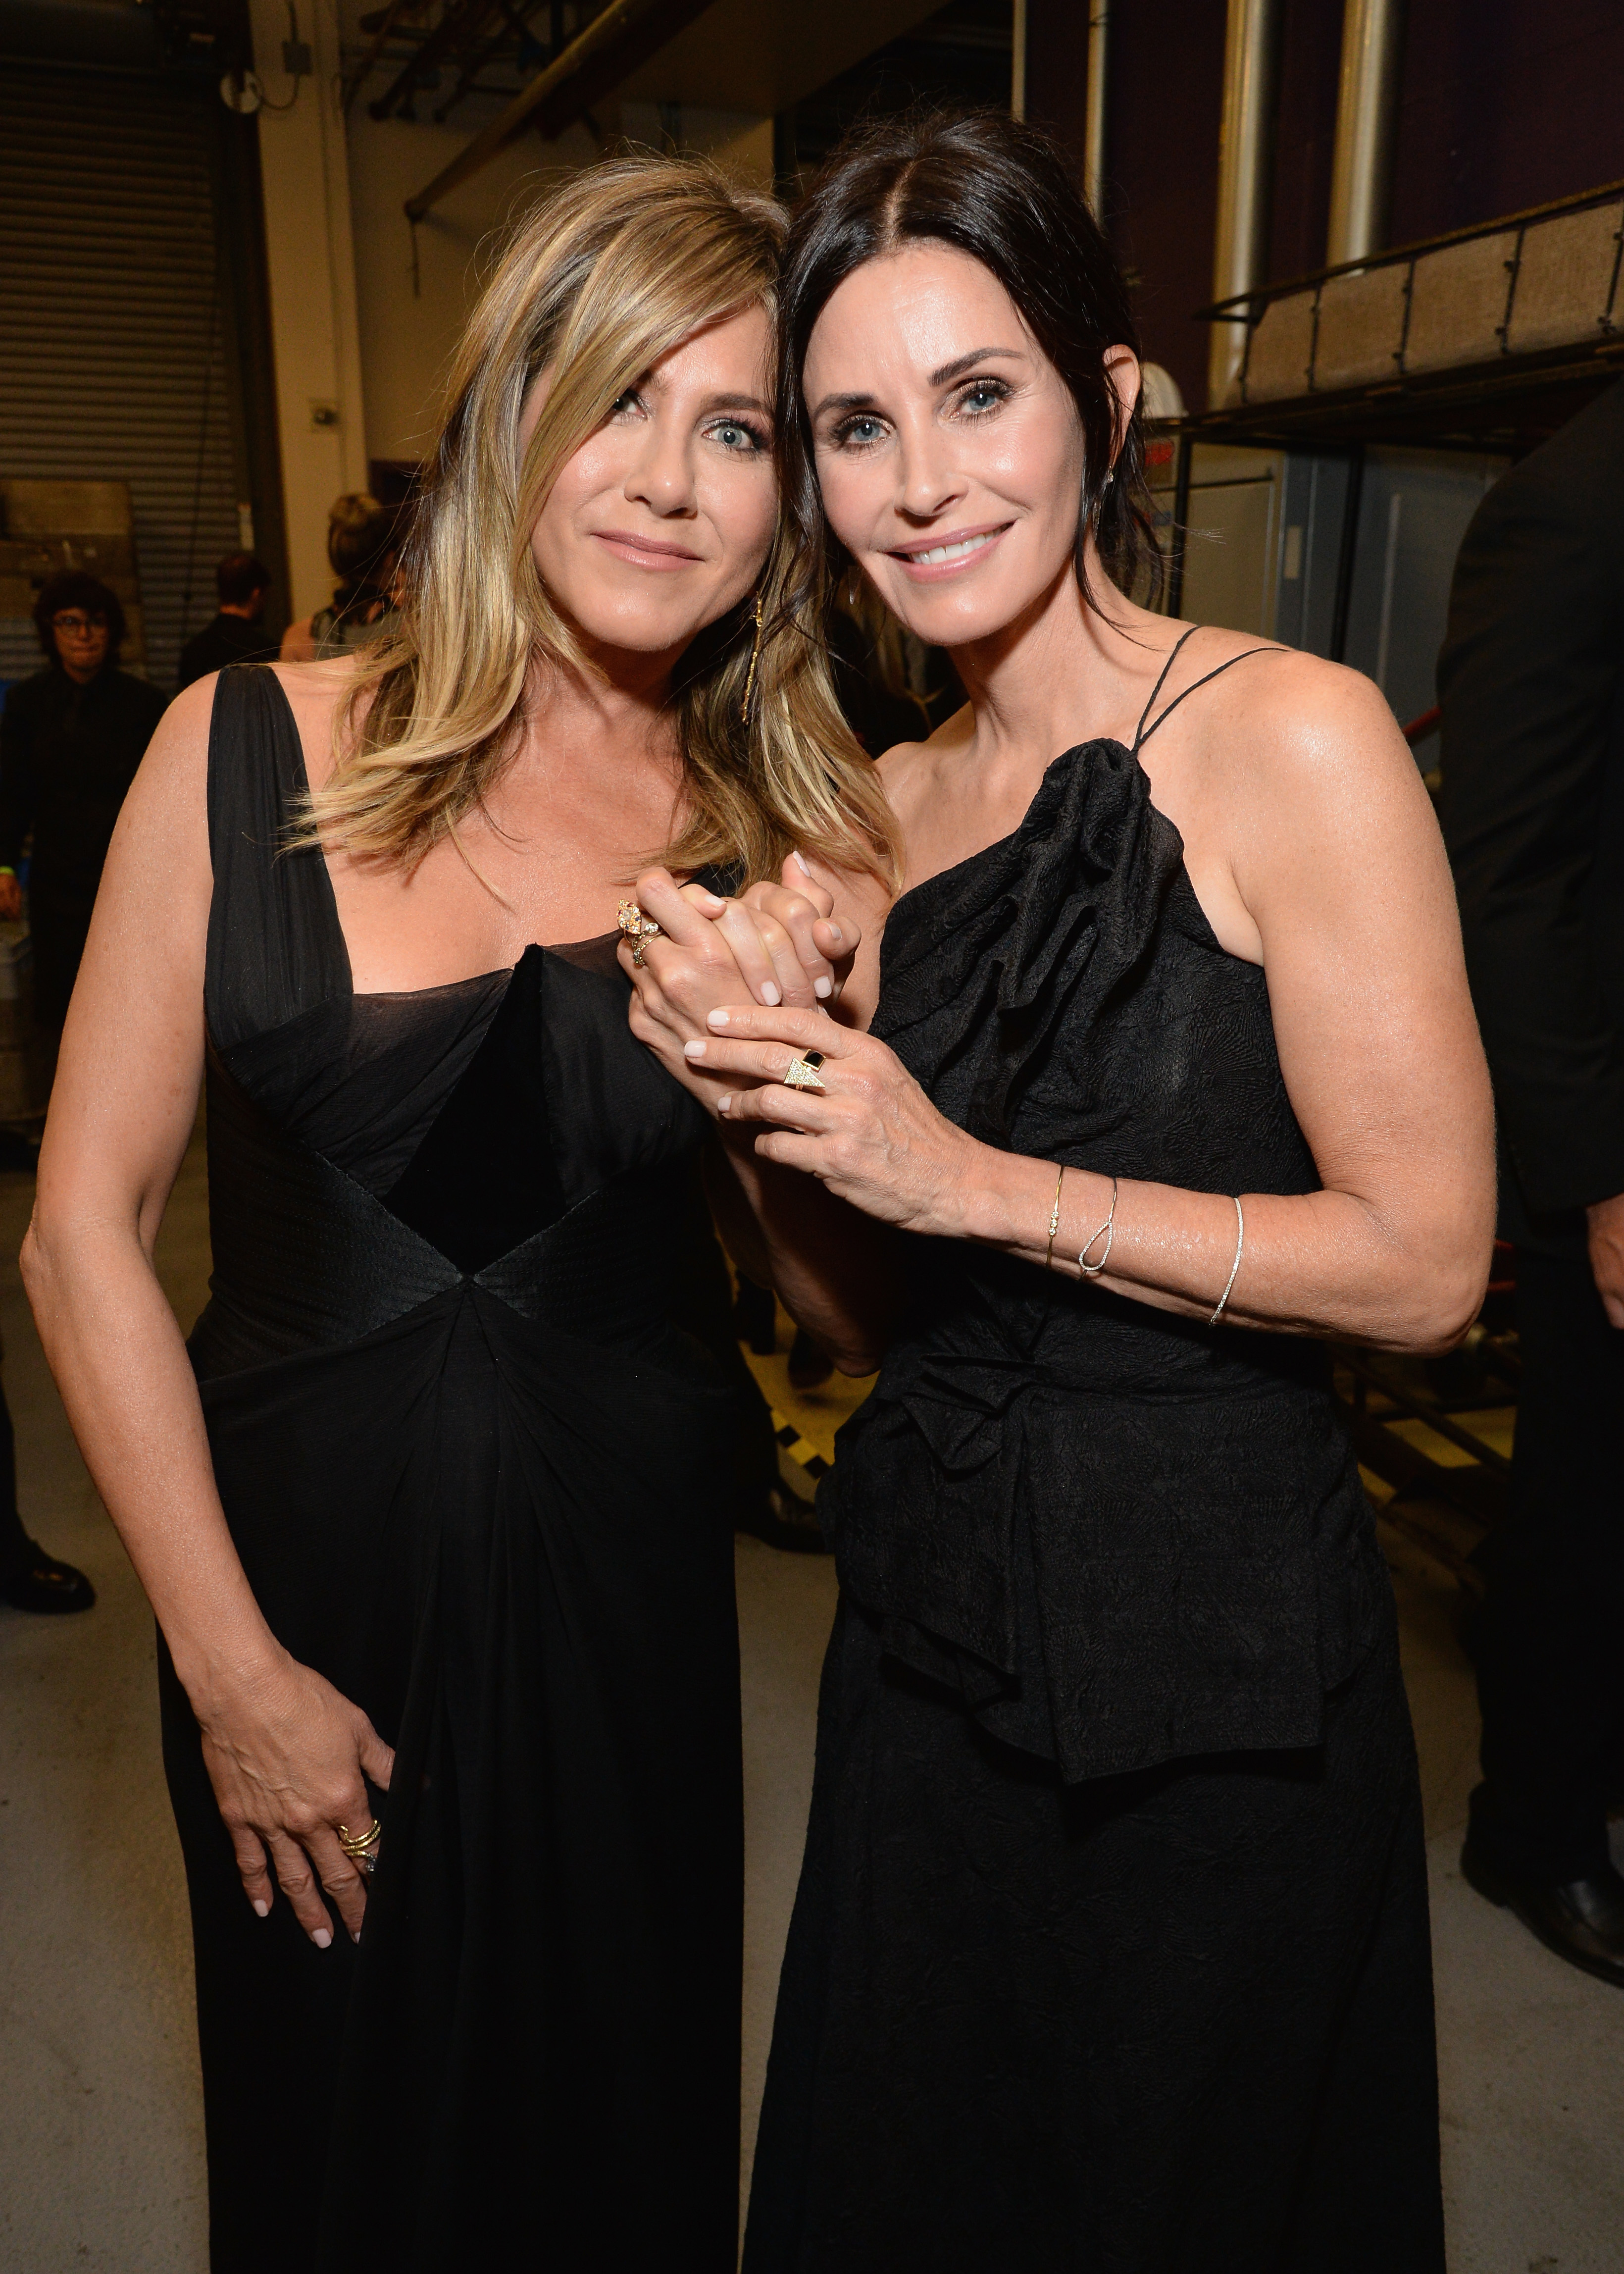 Jennifer Aniston and Courteney Cox attend Audi presents the American Film Institute's 46th Life Achievement Award Gala Tribute to George Clooney in Hollywood on June 7, 2018.